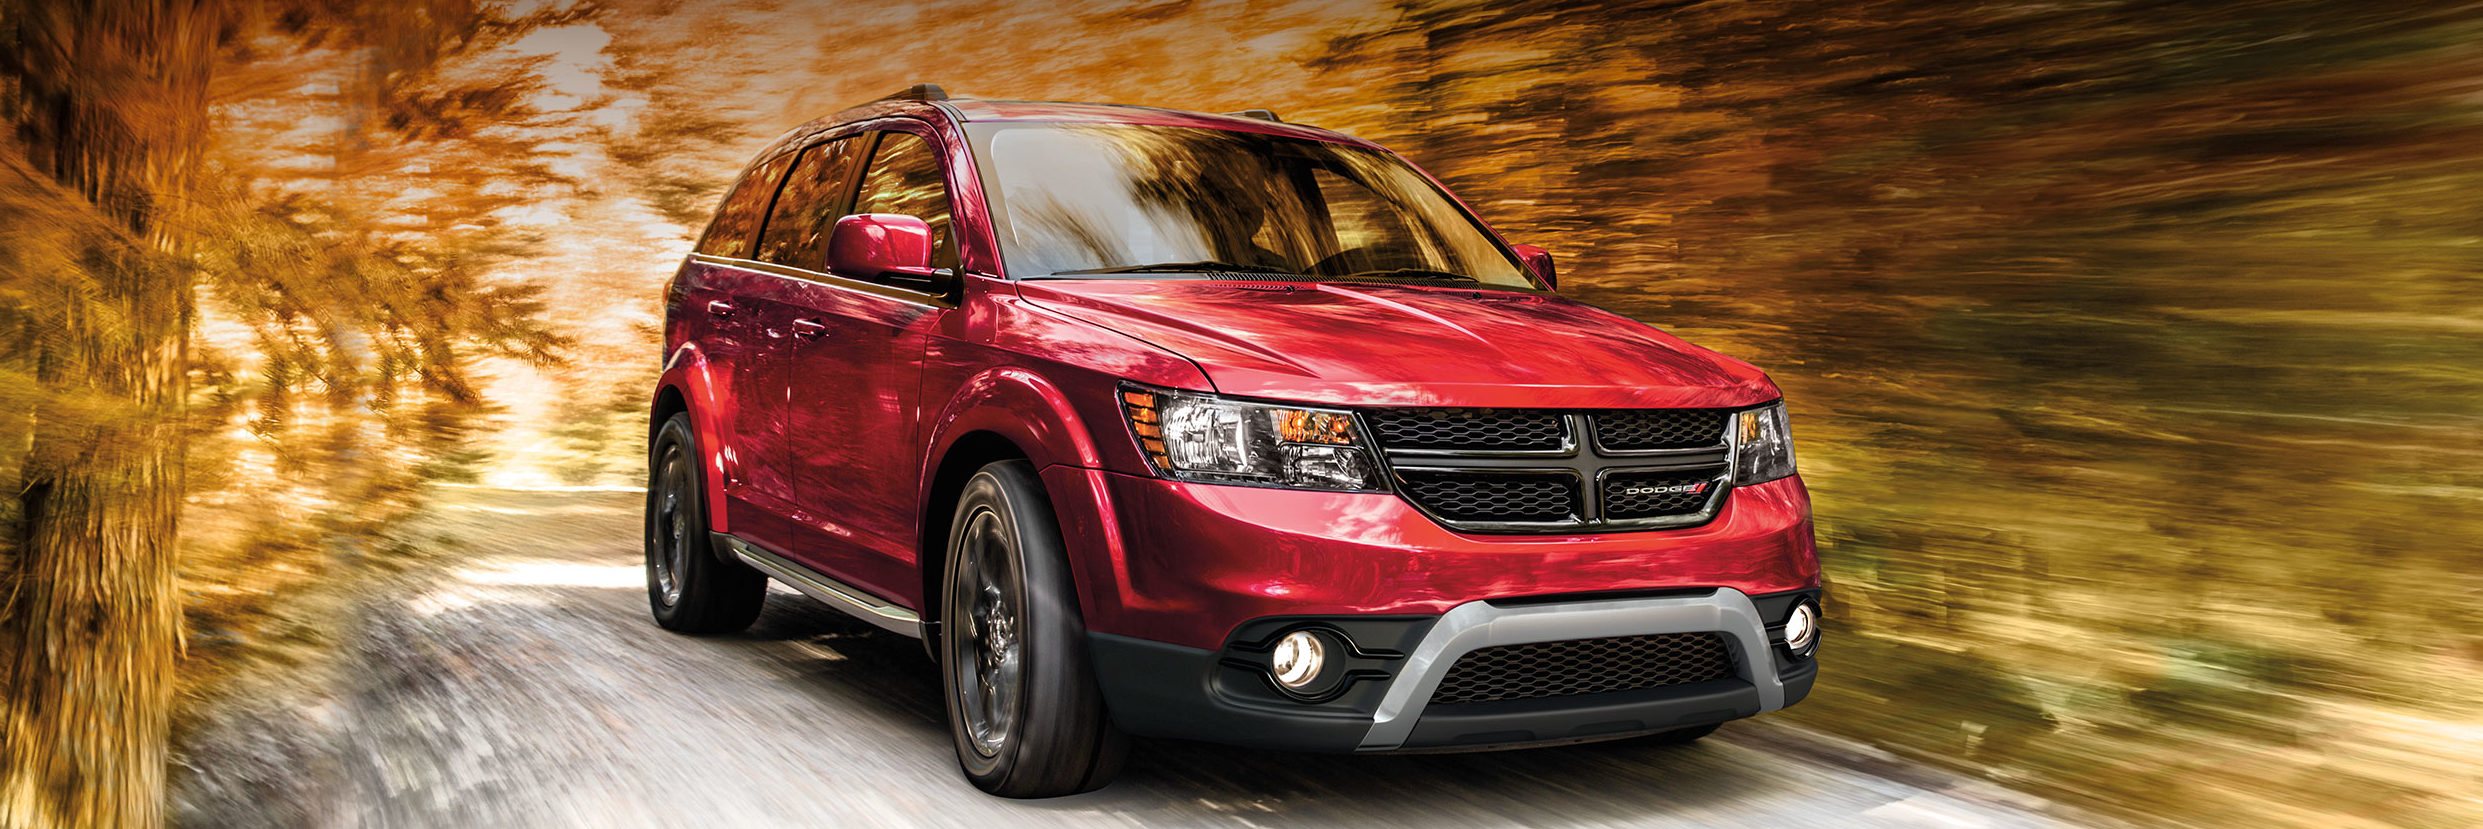 2018 Dodge Journey driving through blurred leaves